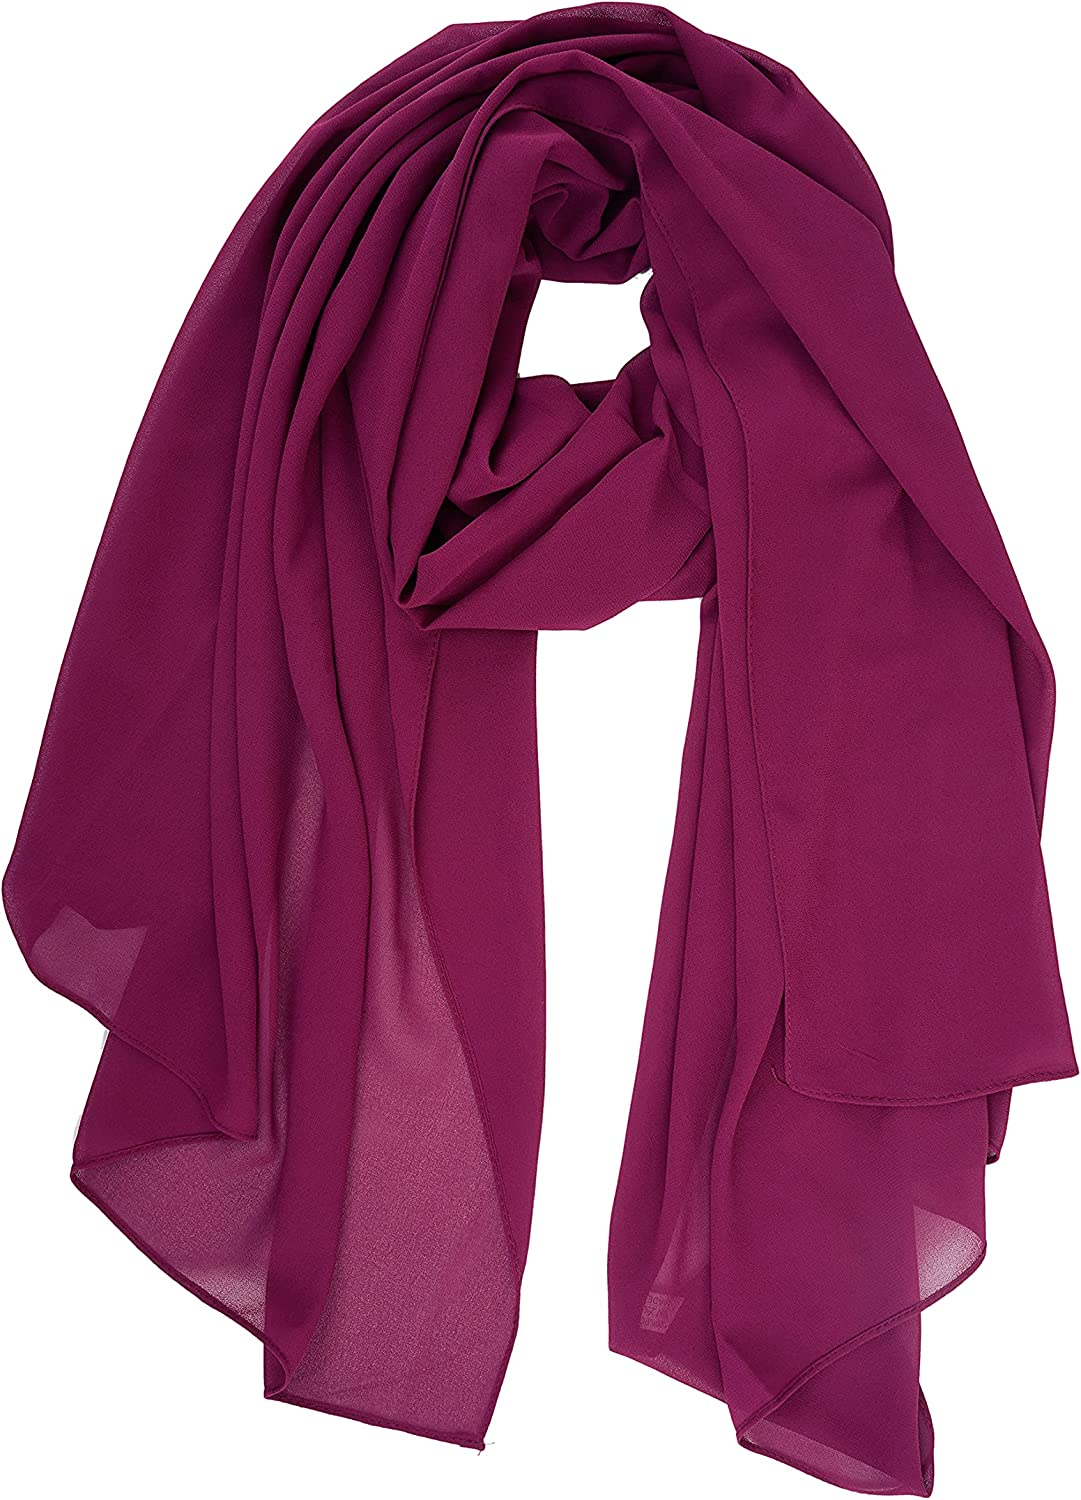 YOUR SMILE for Women Lightweight Breathable Solid Color Soft Chiffon Long Fashion Scarves Sun-proof Shawls Wrap